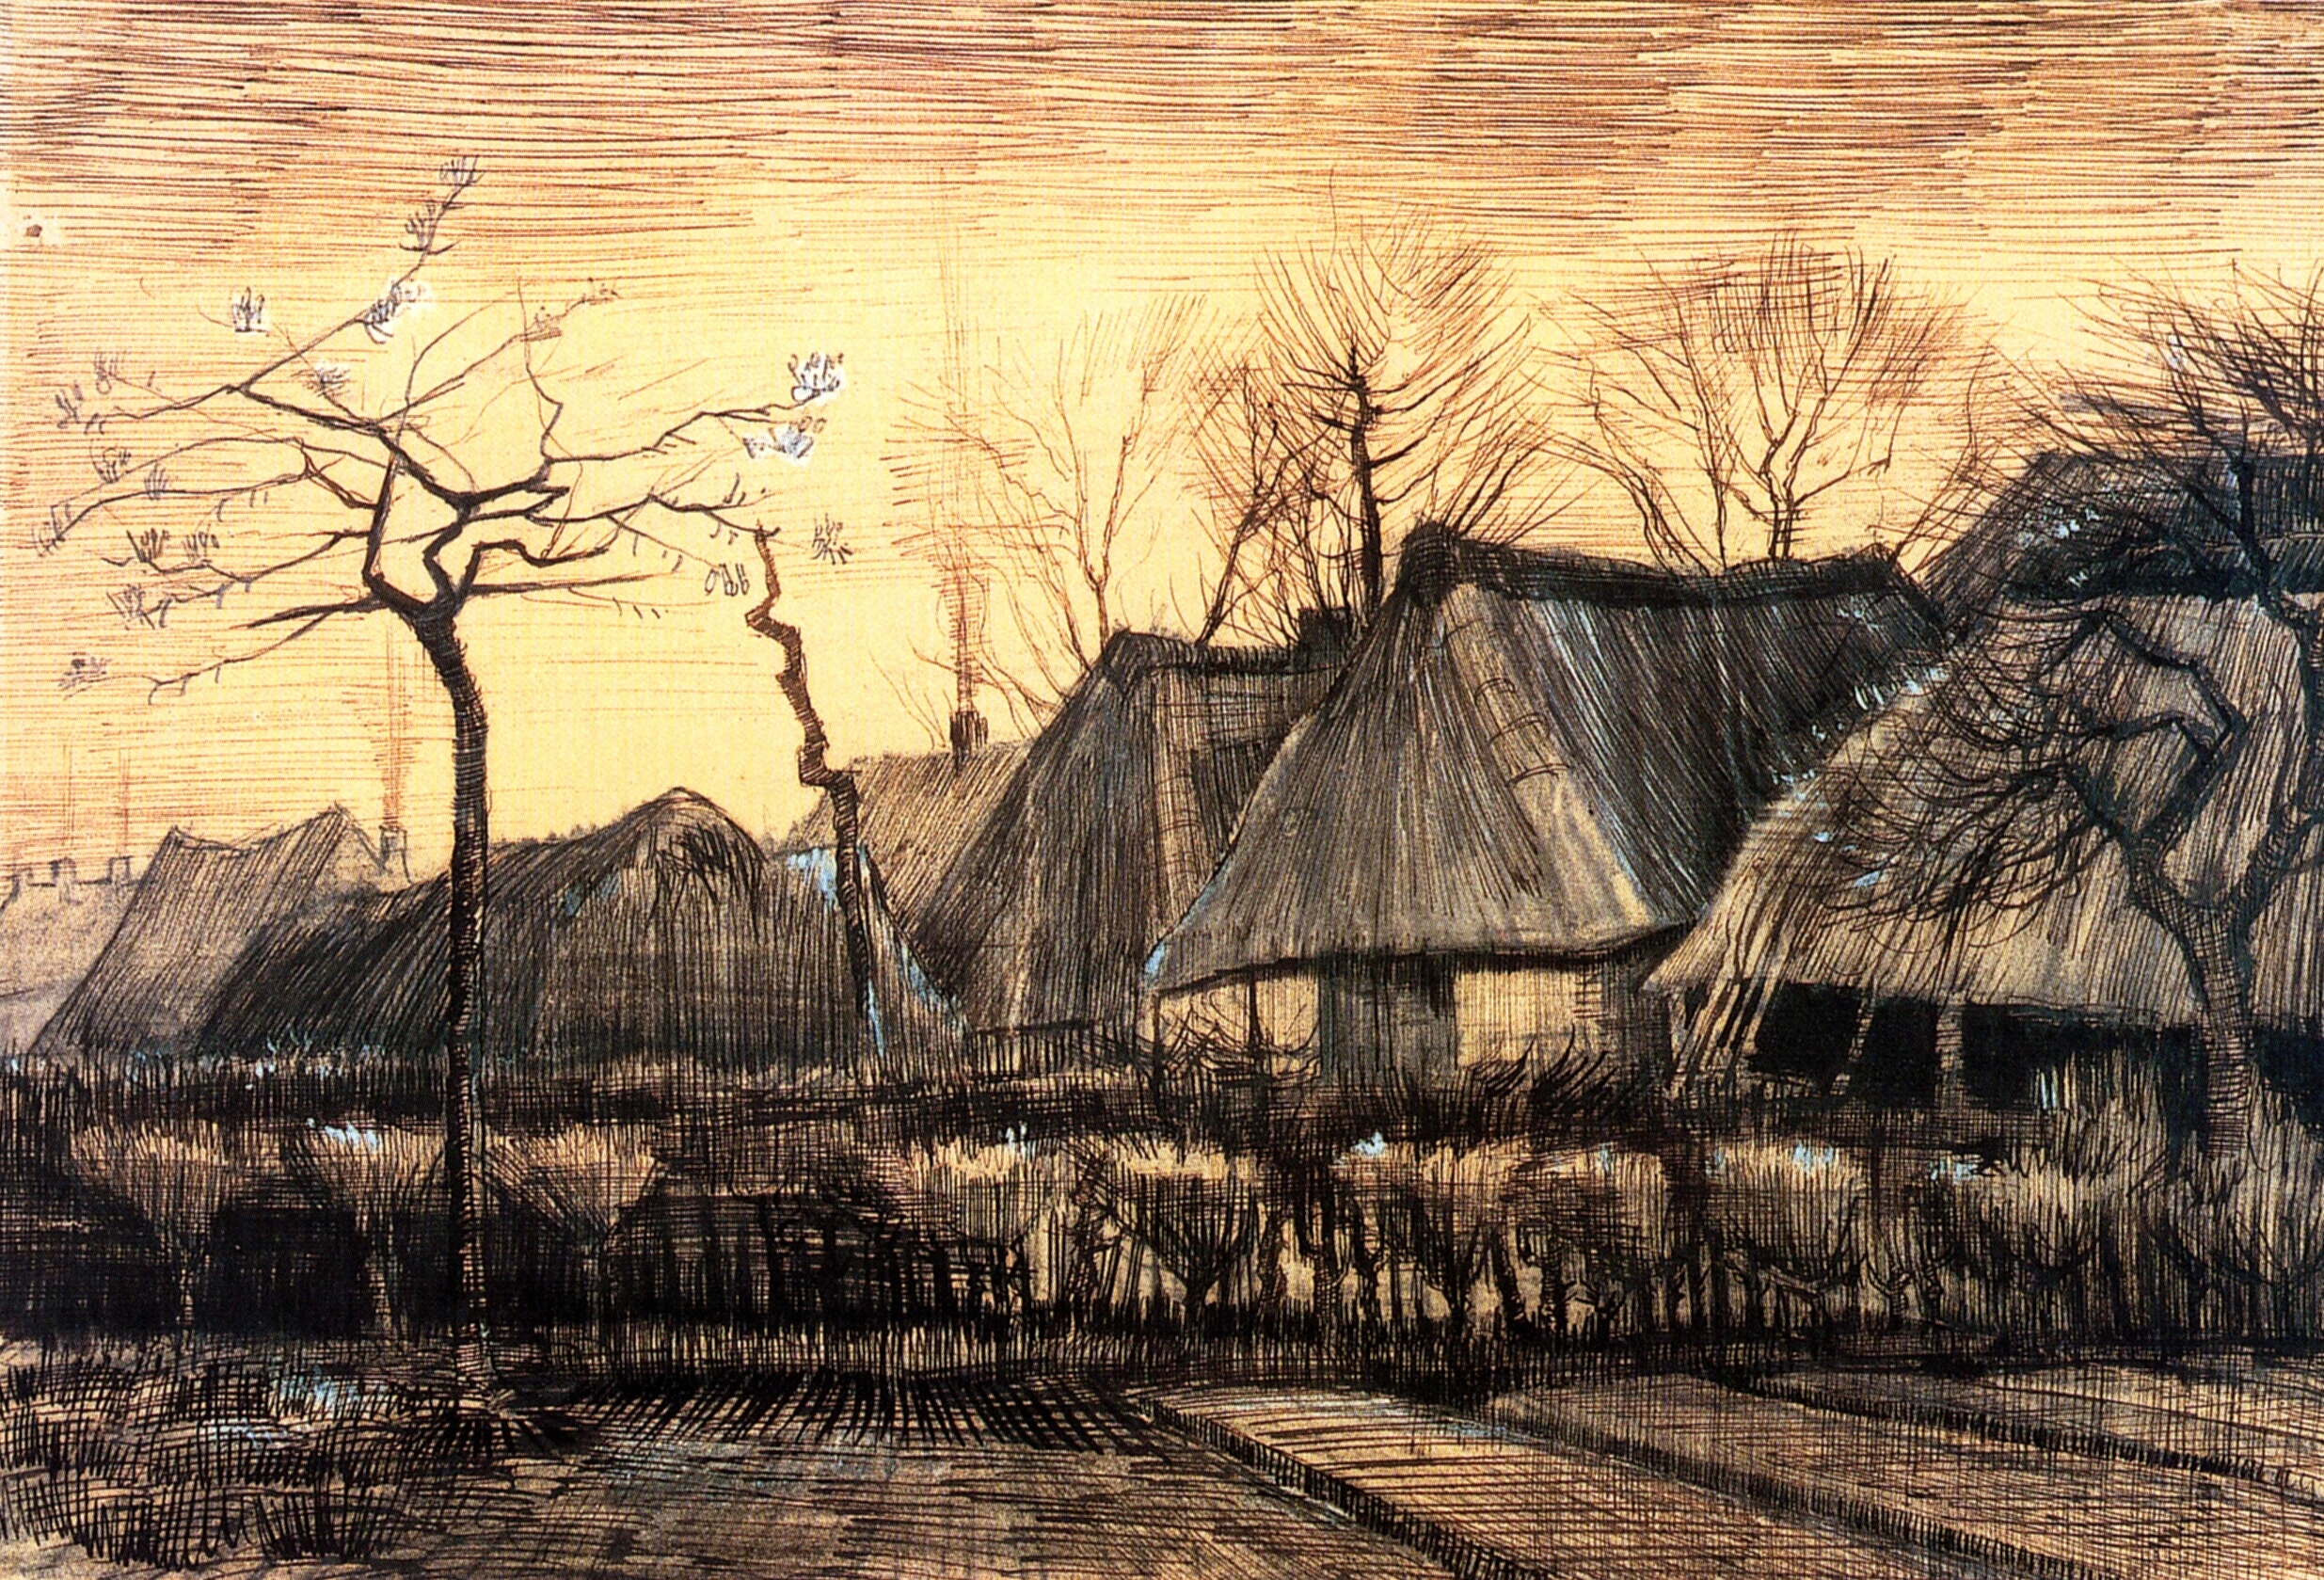 Houses With Thatched Roofs 1884 Vincent Van Gogh